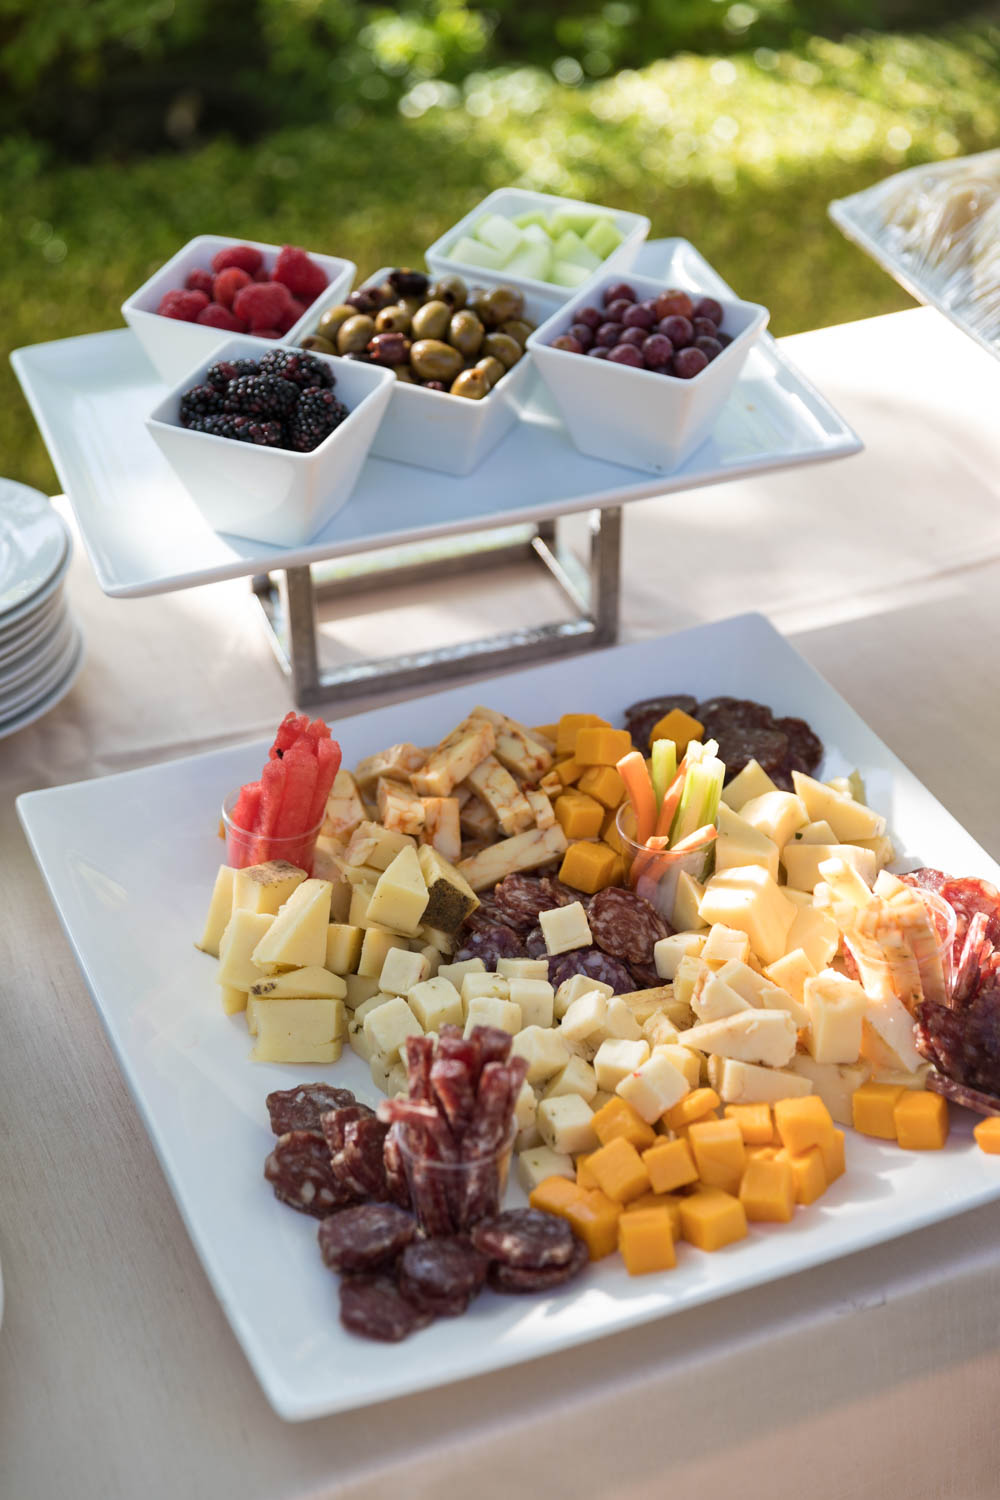 Cheese & fruit plate